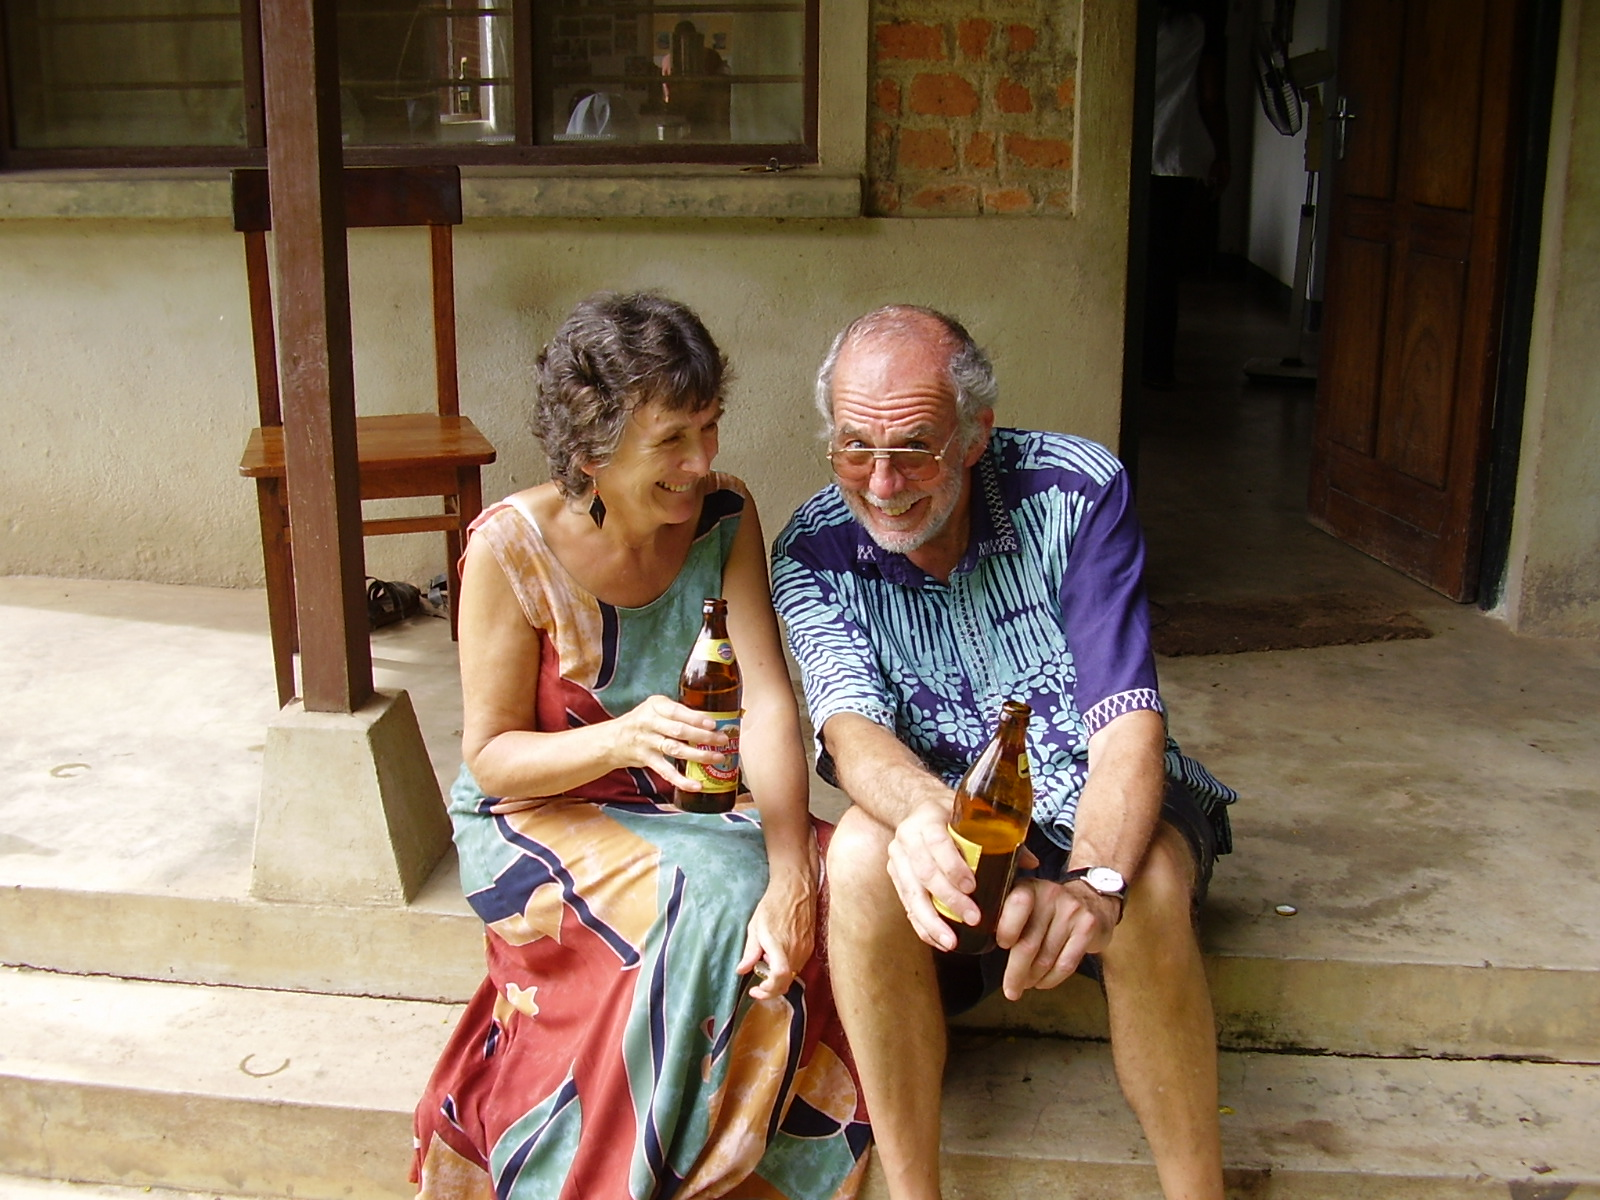 Man and woman holding a beer and laughing